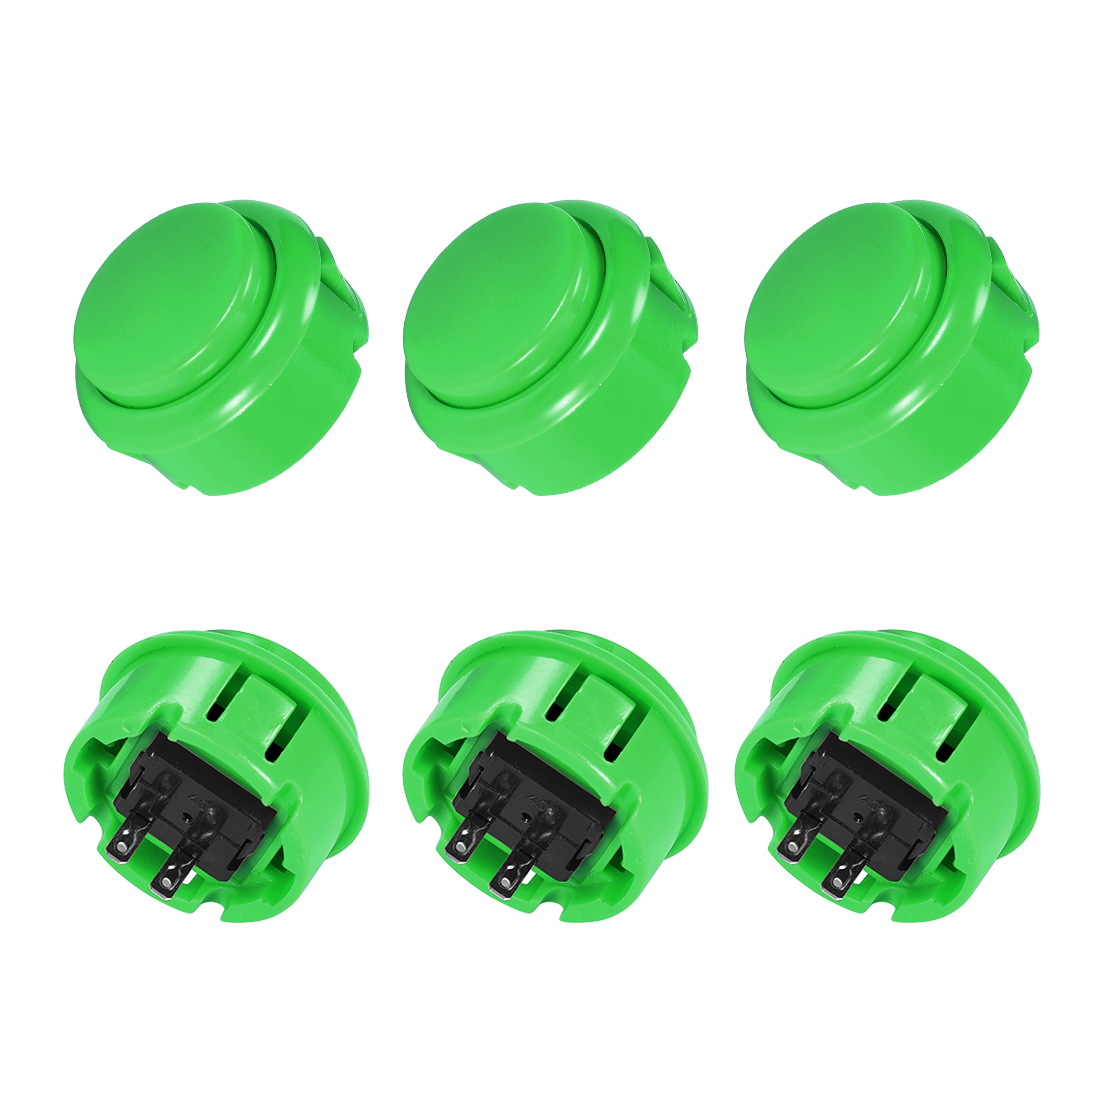 30mm Mounting Momentary Game Push Button Round for Video Games Green 5pcs